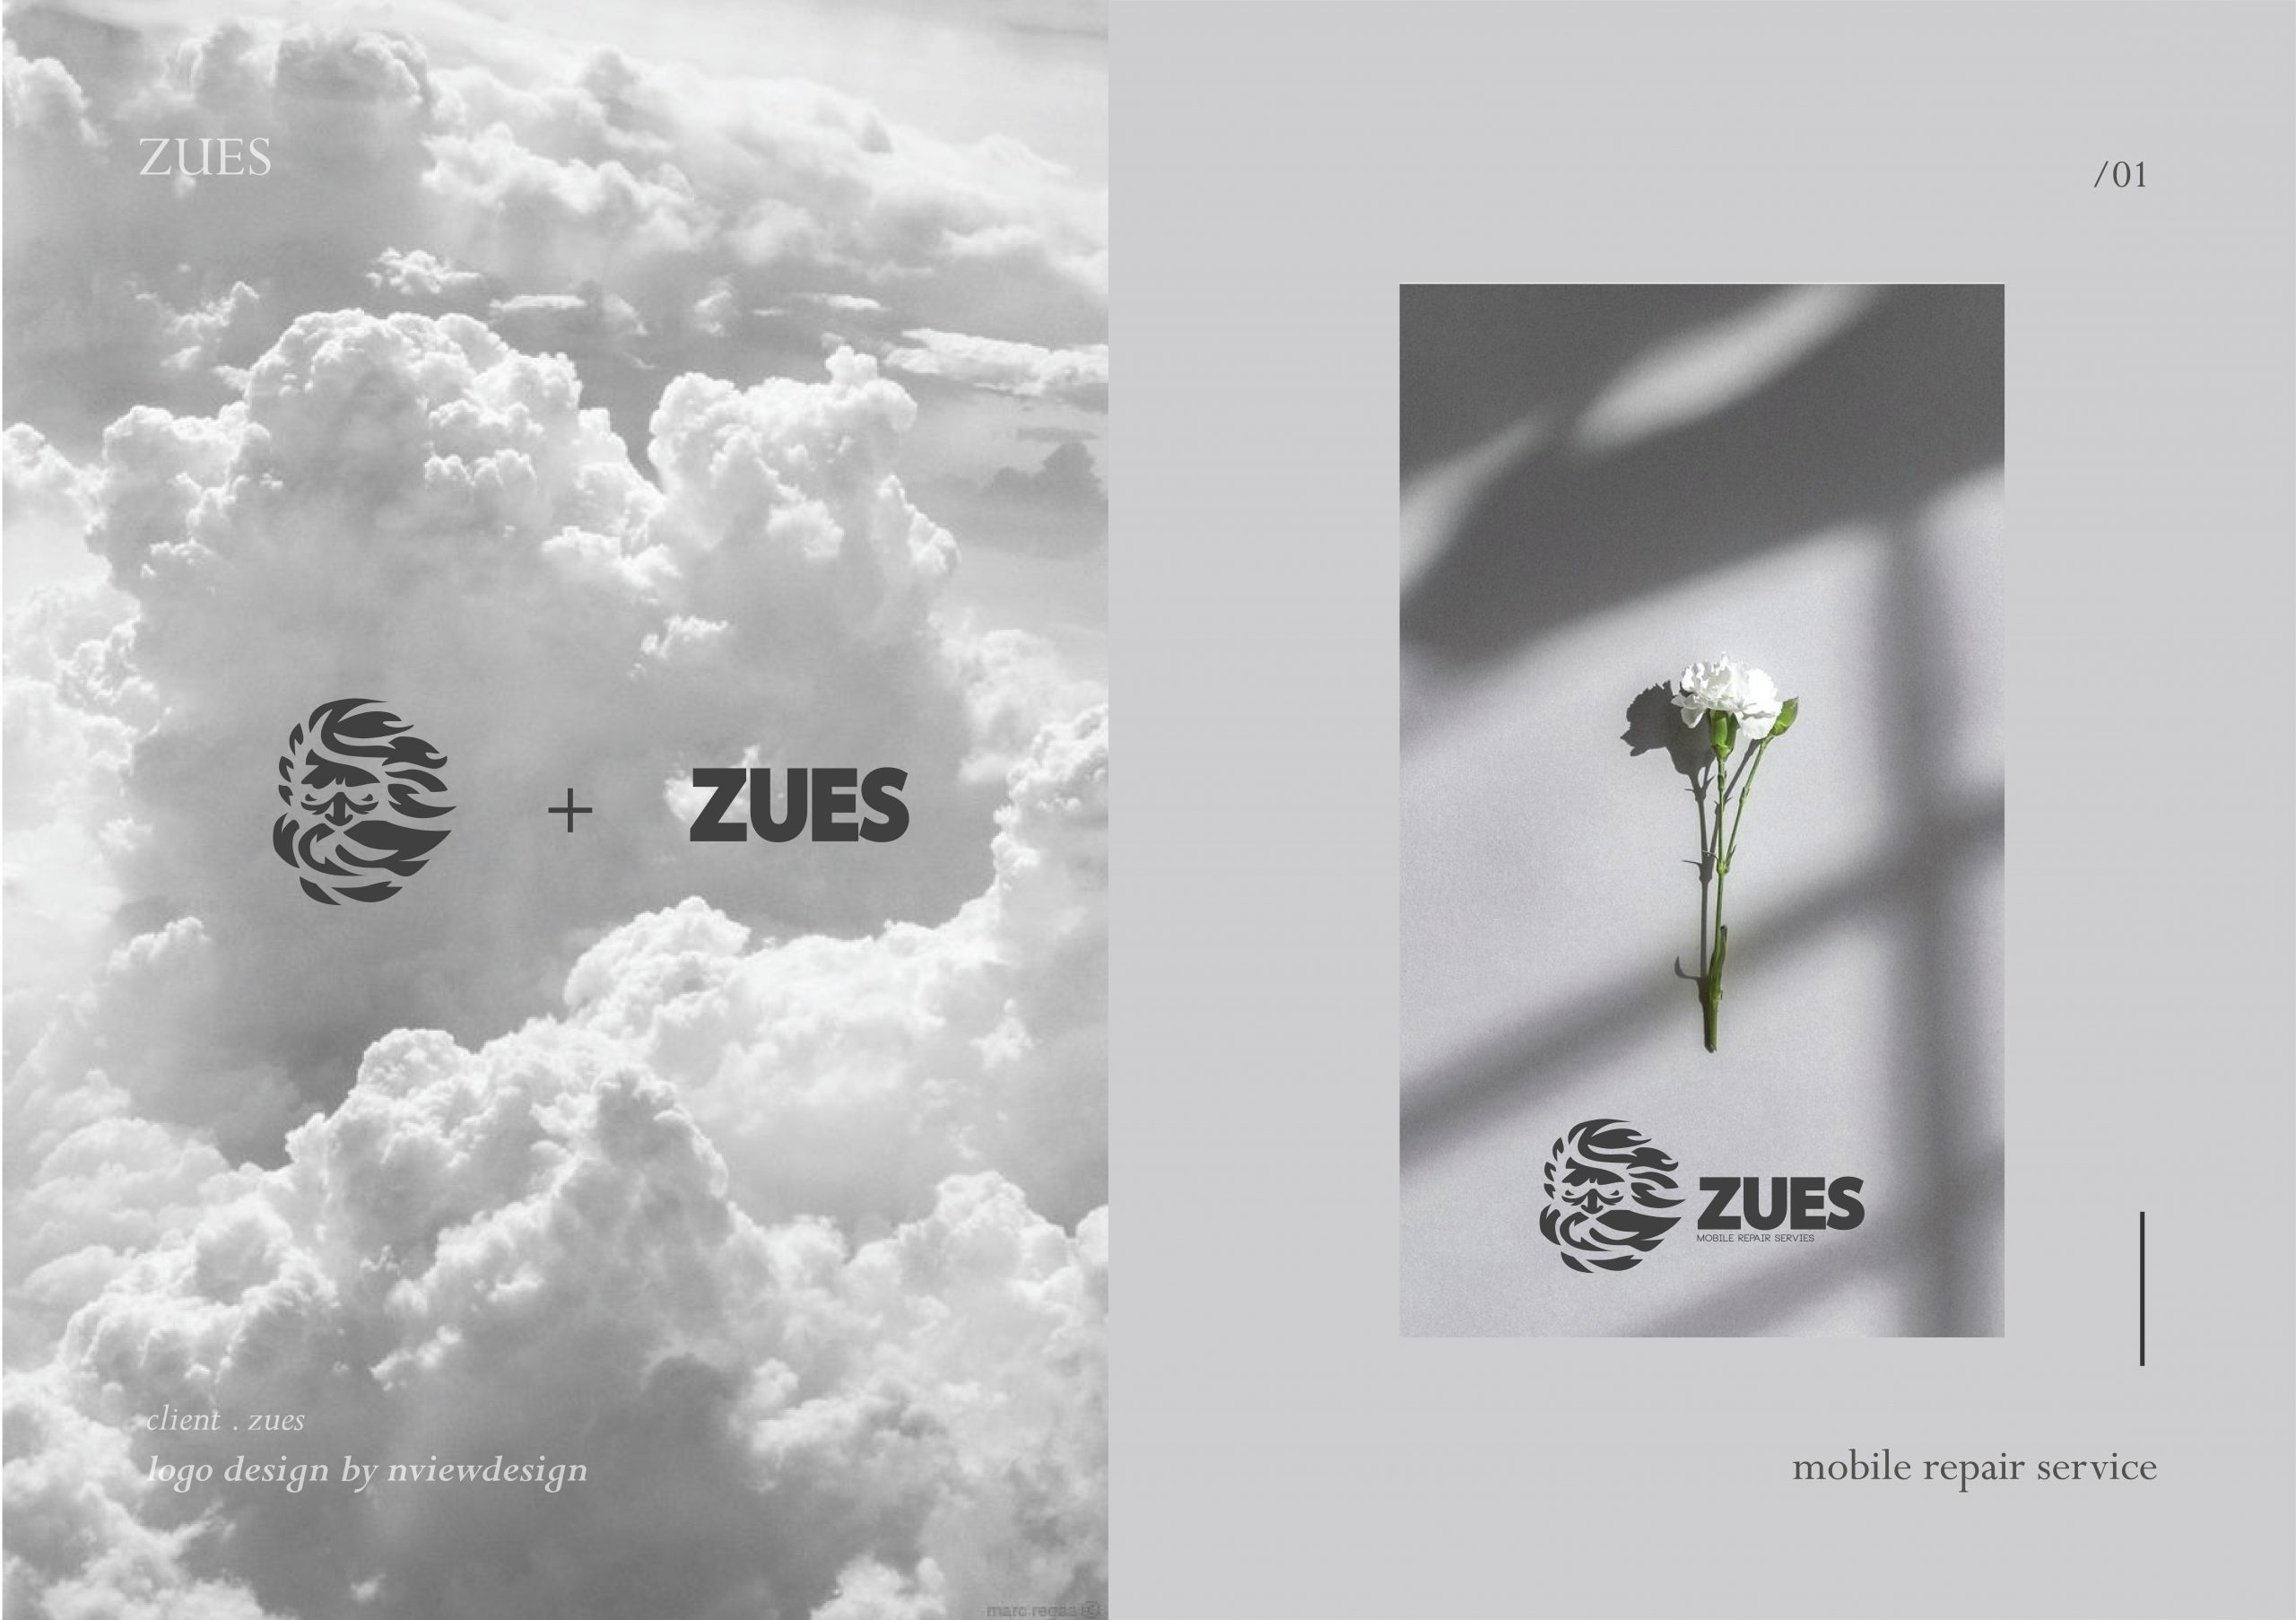 zues purpose 02 scaled